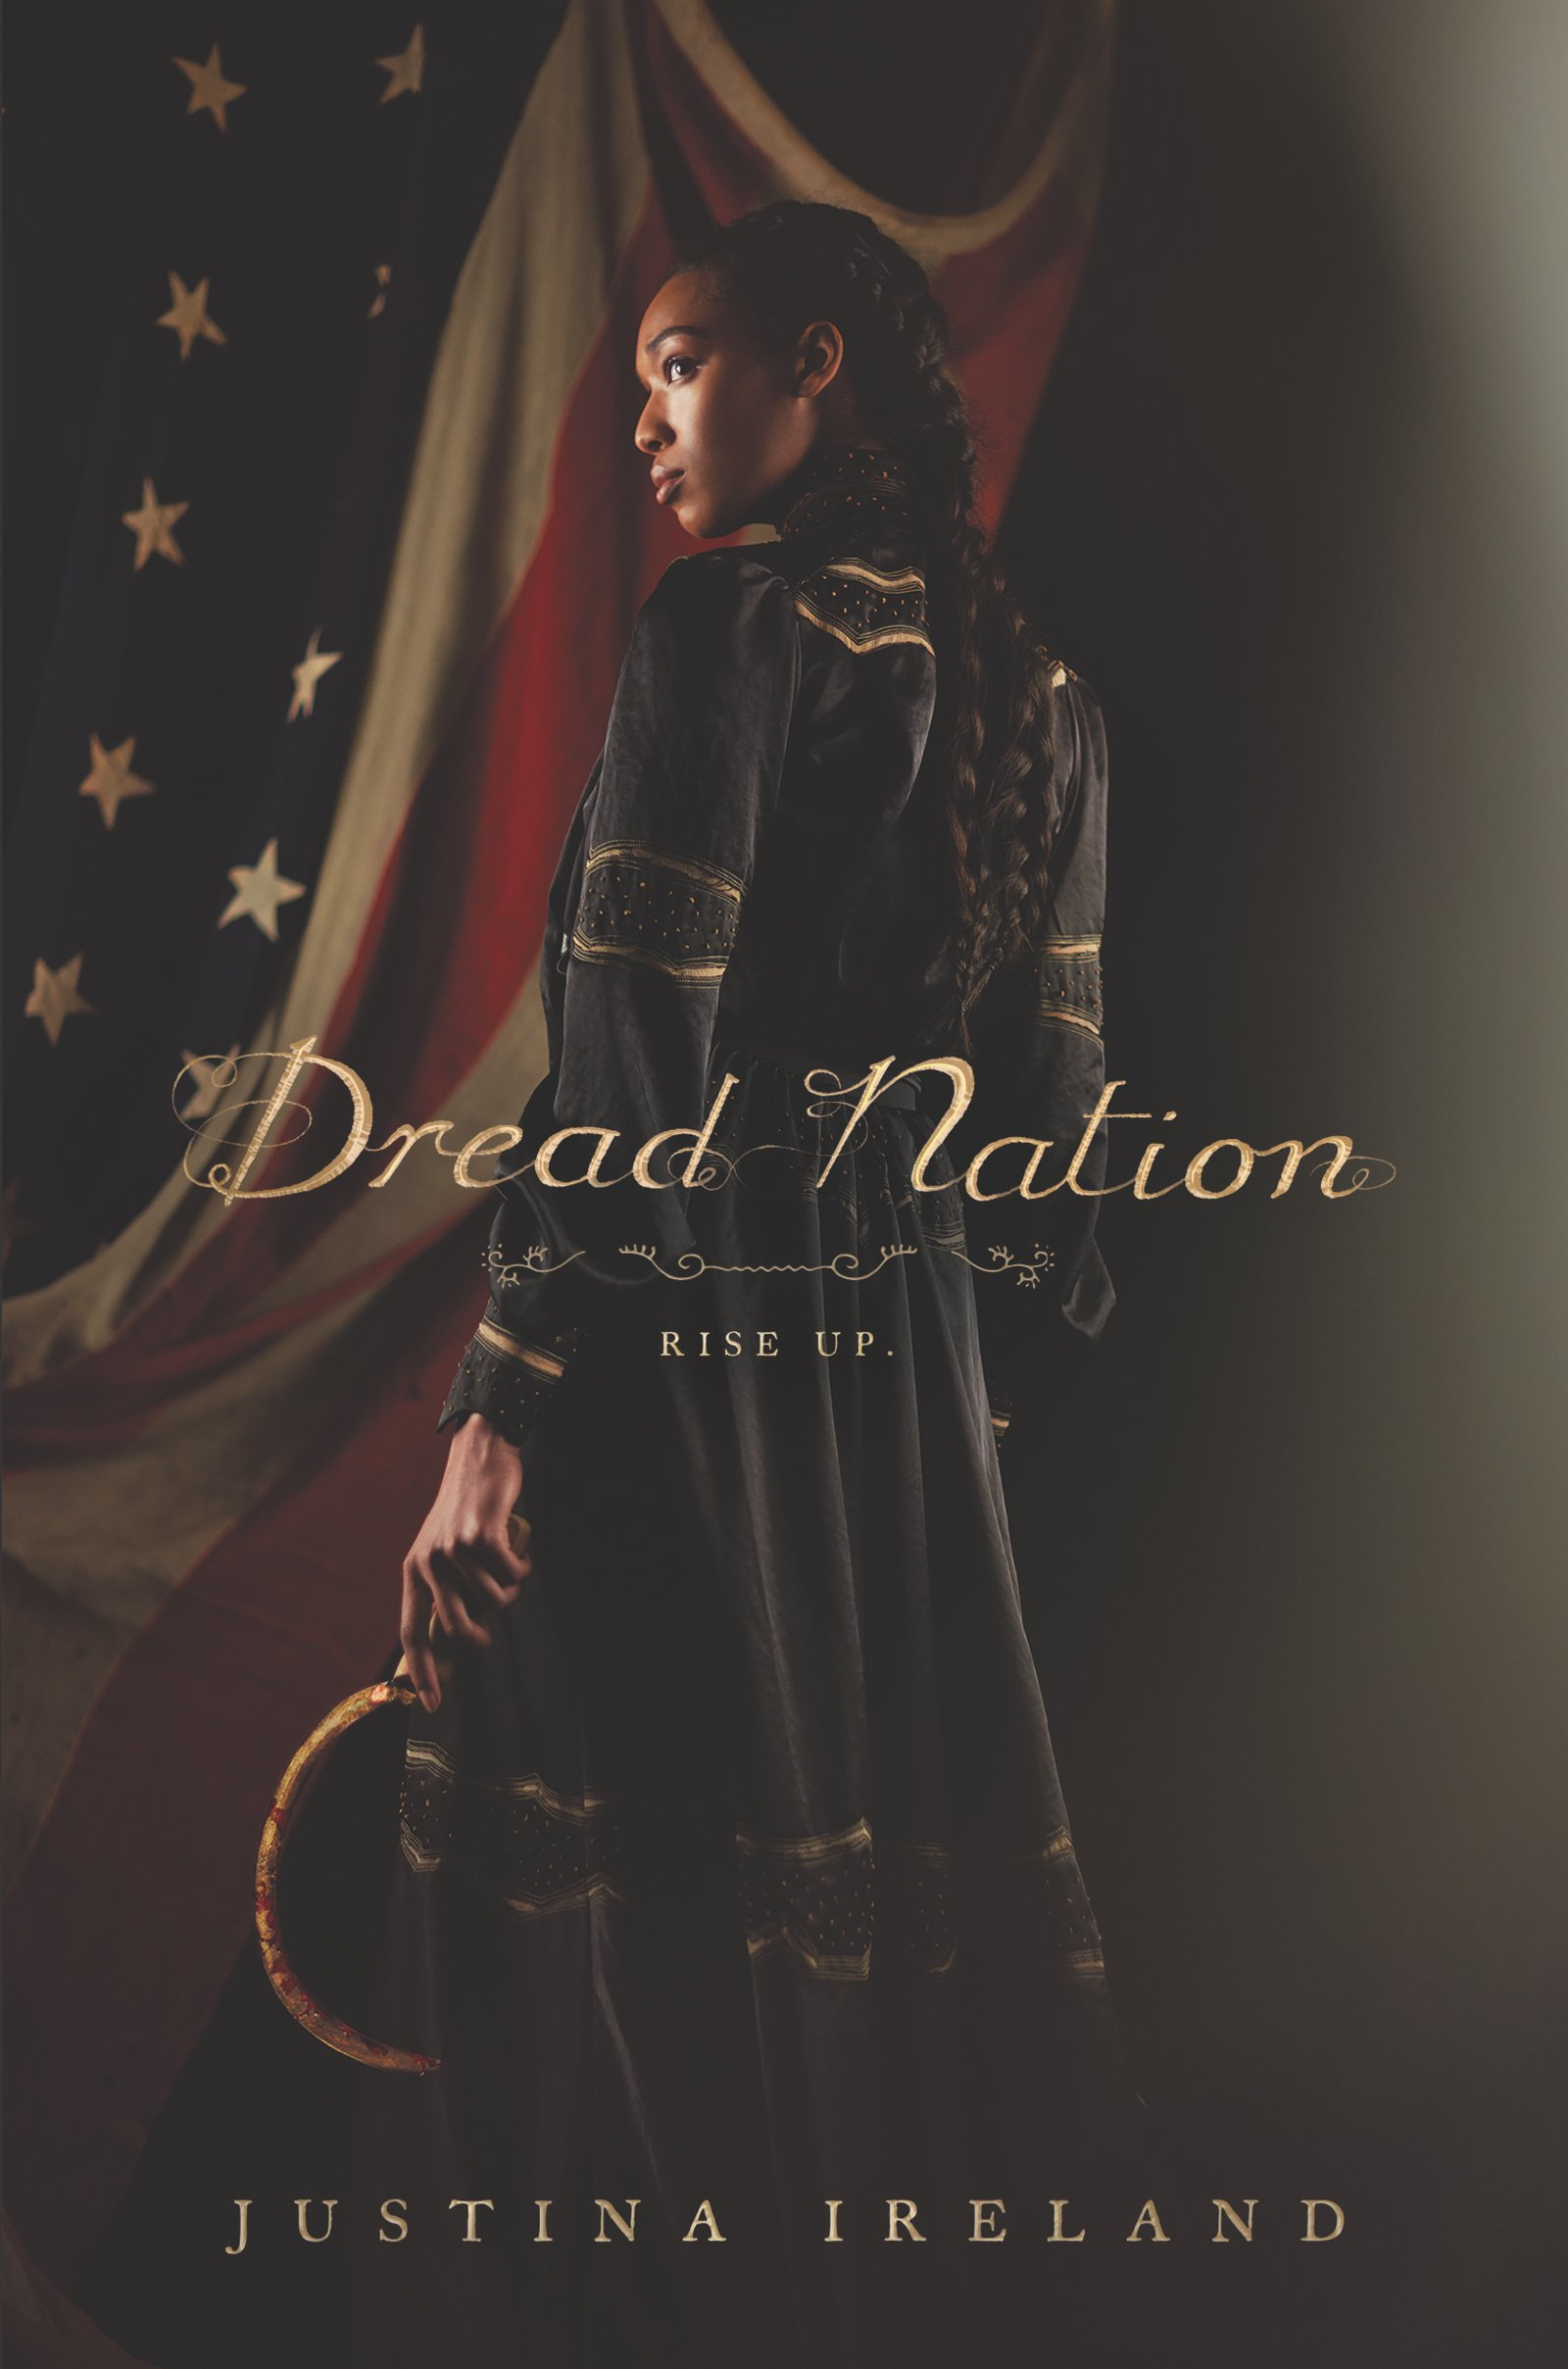 Dread Nation: Amazon.co.uk: Ireland, Justina: 9780062570604: Books